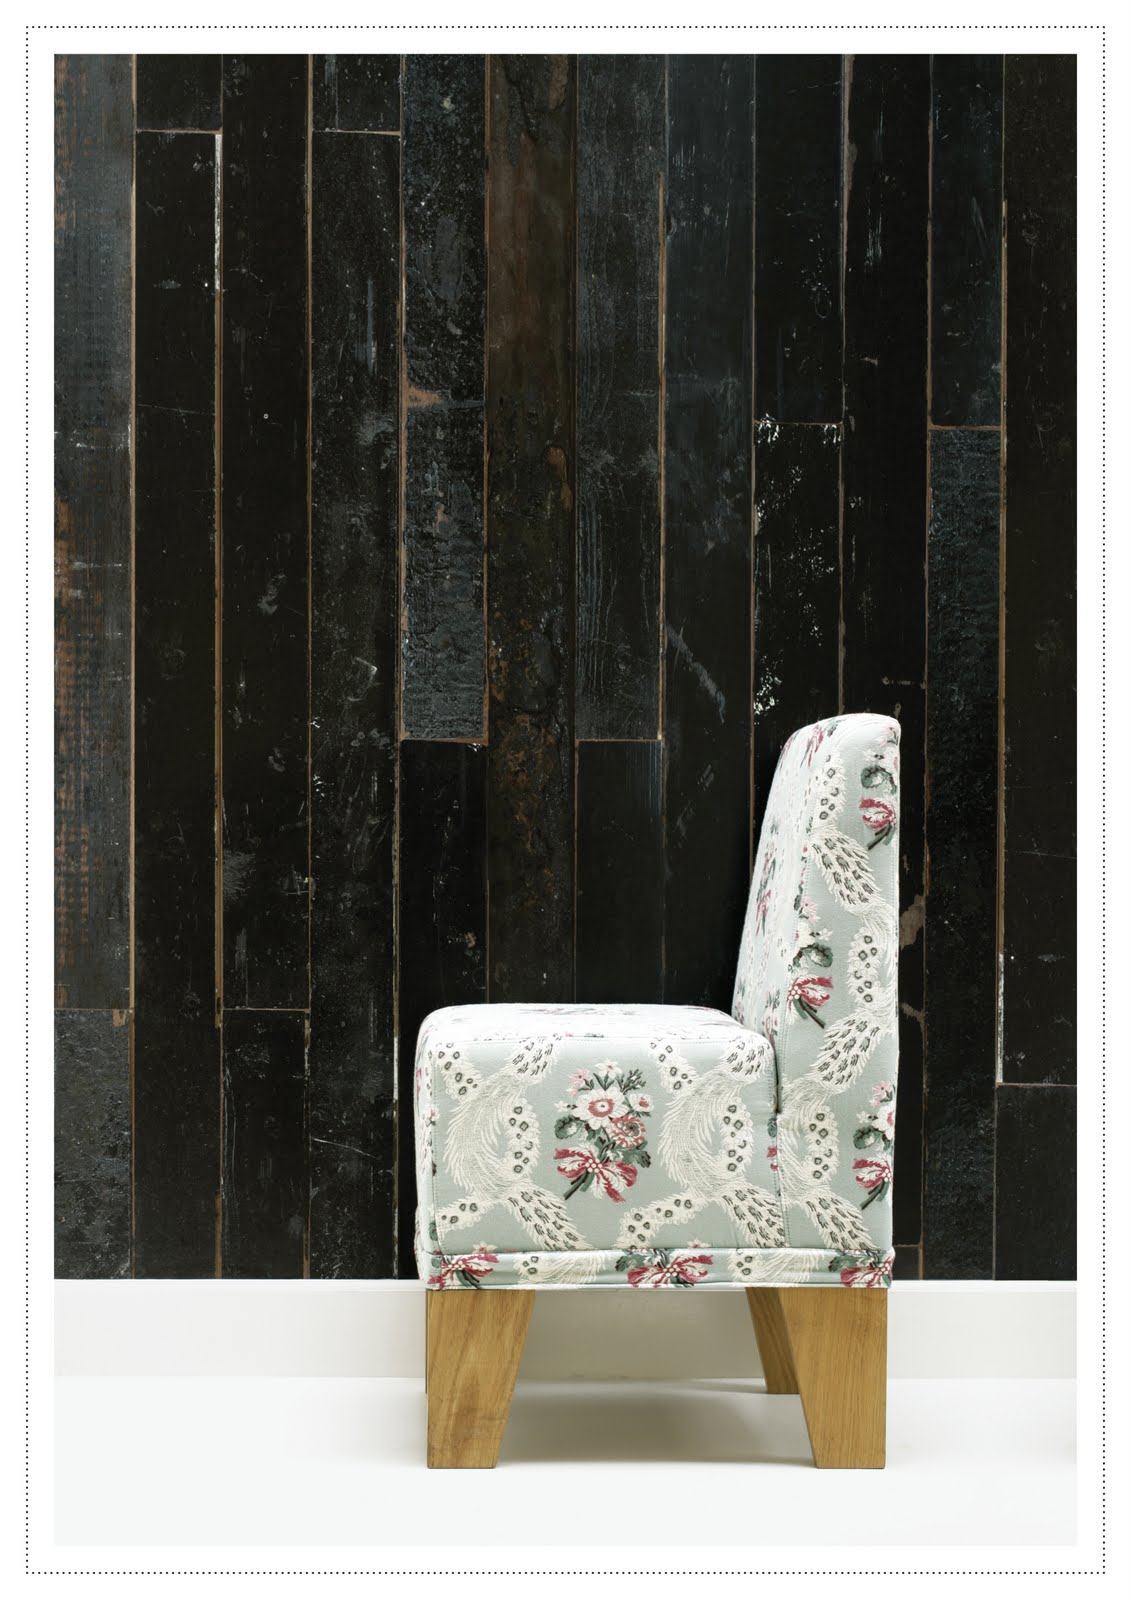 ... scrapwood wallpaper by piet hein eek sisalla realistic wallpapers